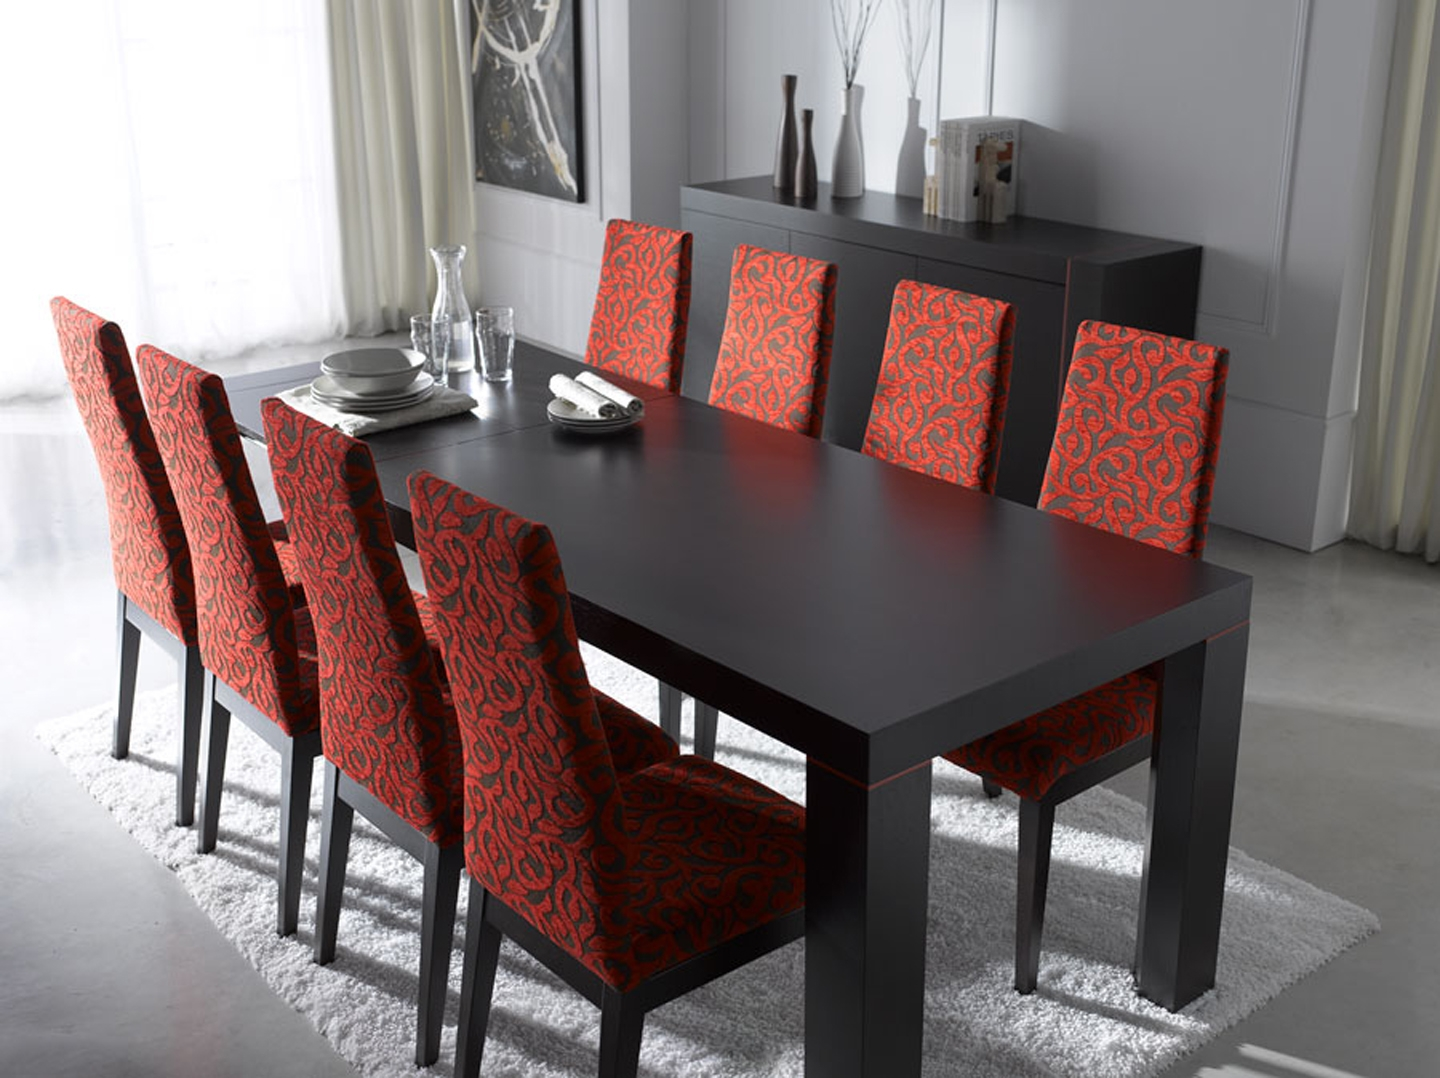 New Modern Dining Room Table And Chairs Of Awesome 2011 Hot Sale Setjpg modern dining room furniture for sale